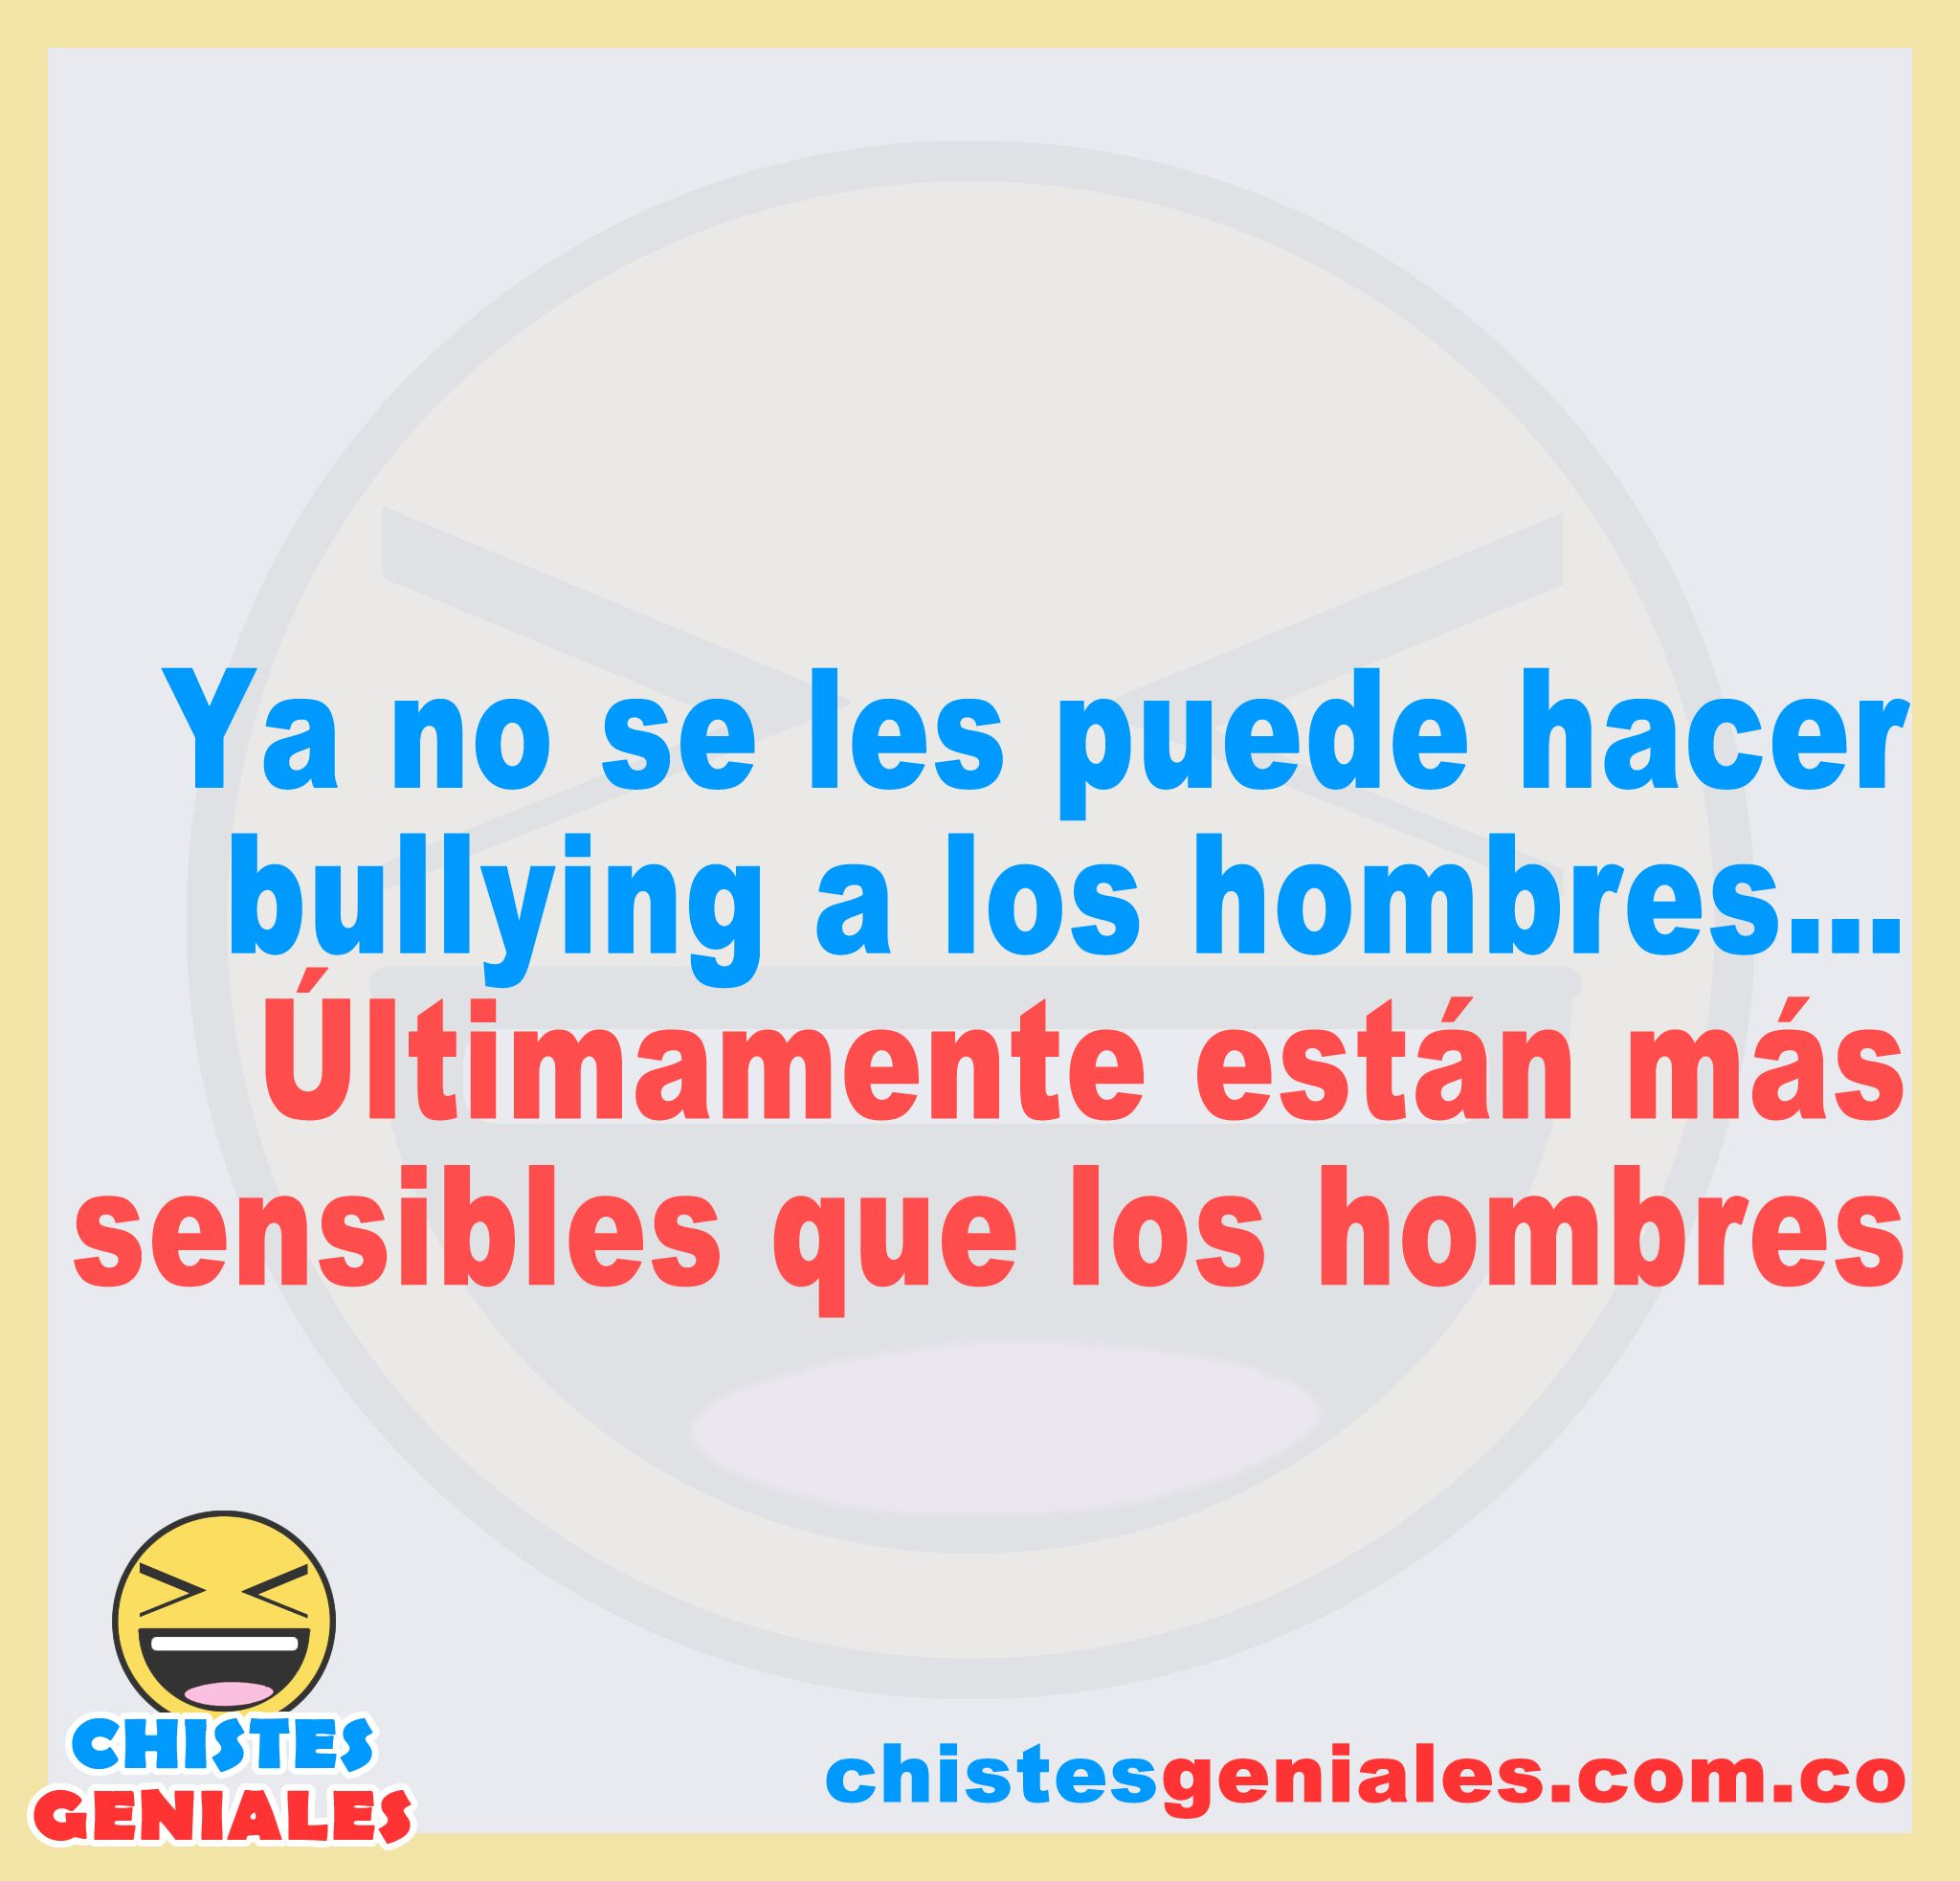 Bullying A Los Hombres Chistes Geniales Hombres Chistes